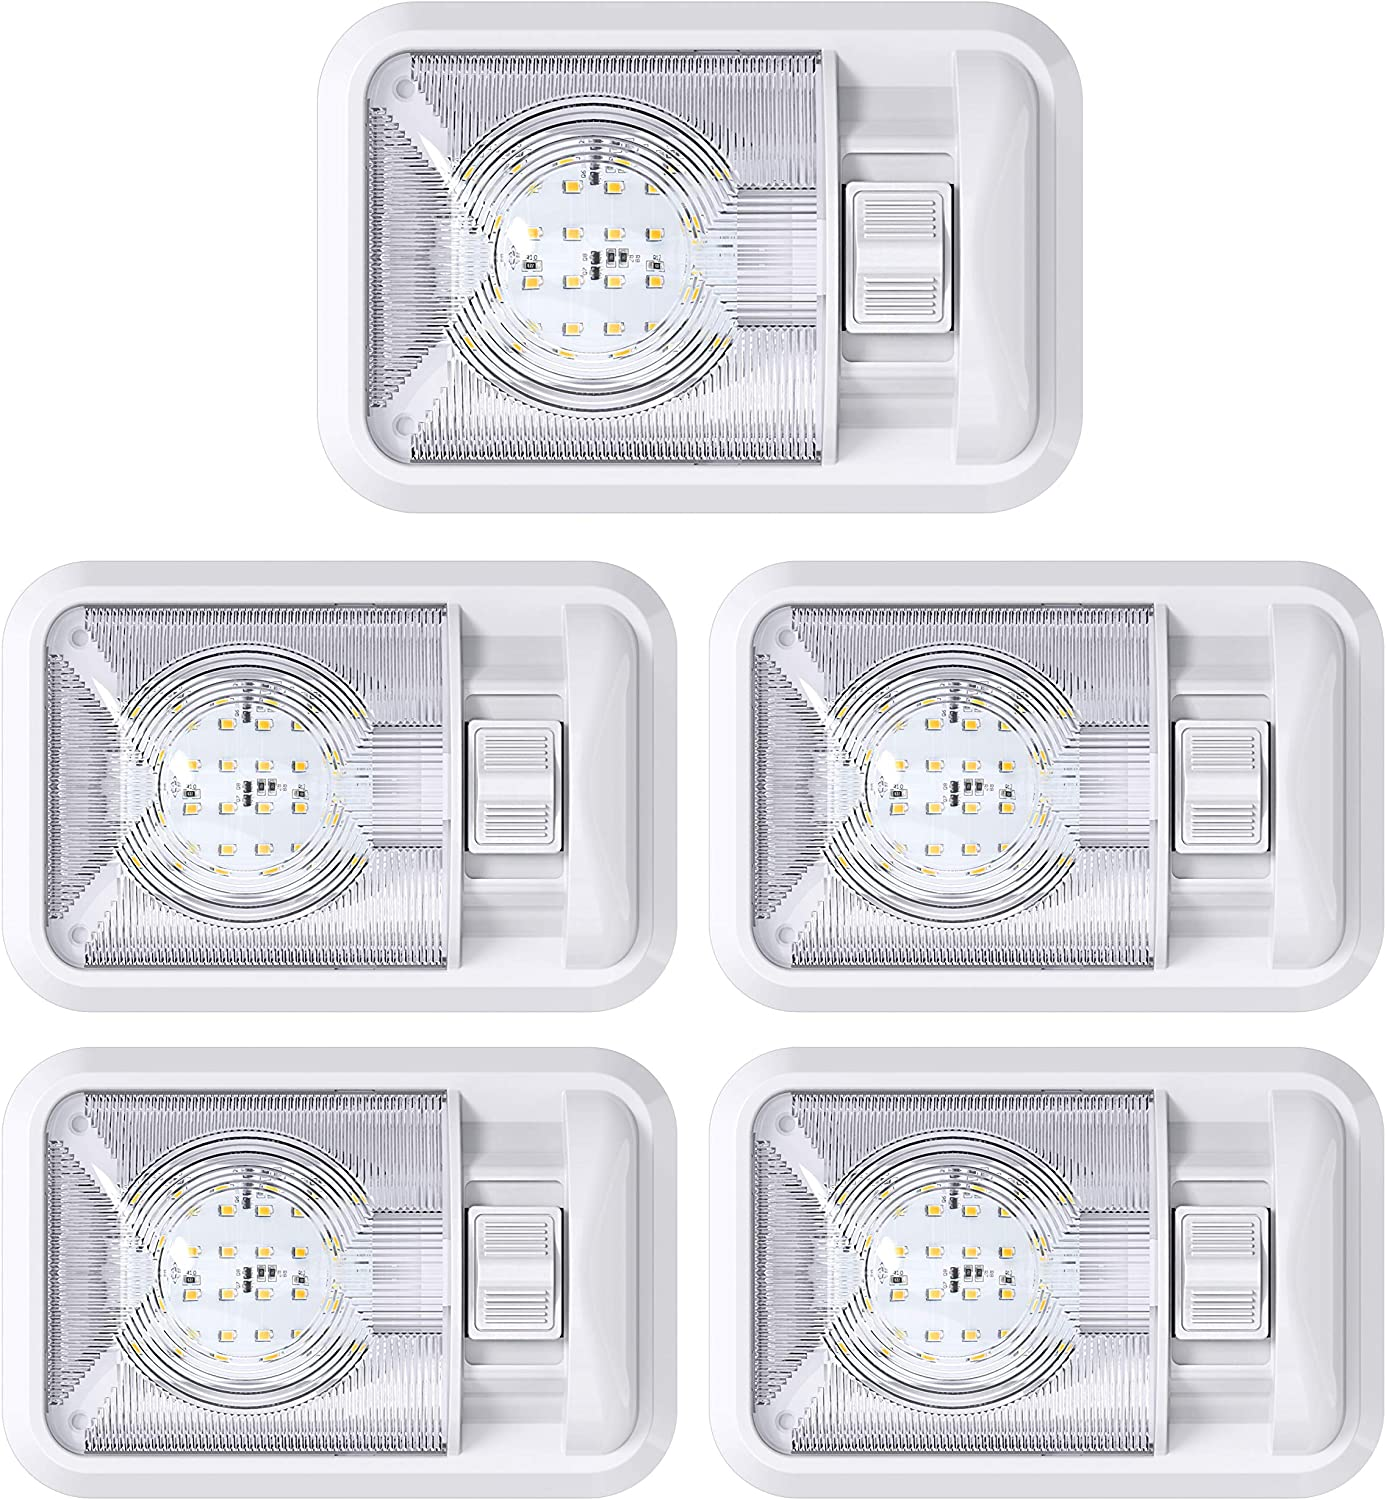 MICTUNING 12V LED RV Ceiling Double Dome Light Fixture 11.5 RV Interior Lighting with Switch for Trailer Camper Warm White, Pack of 1